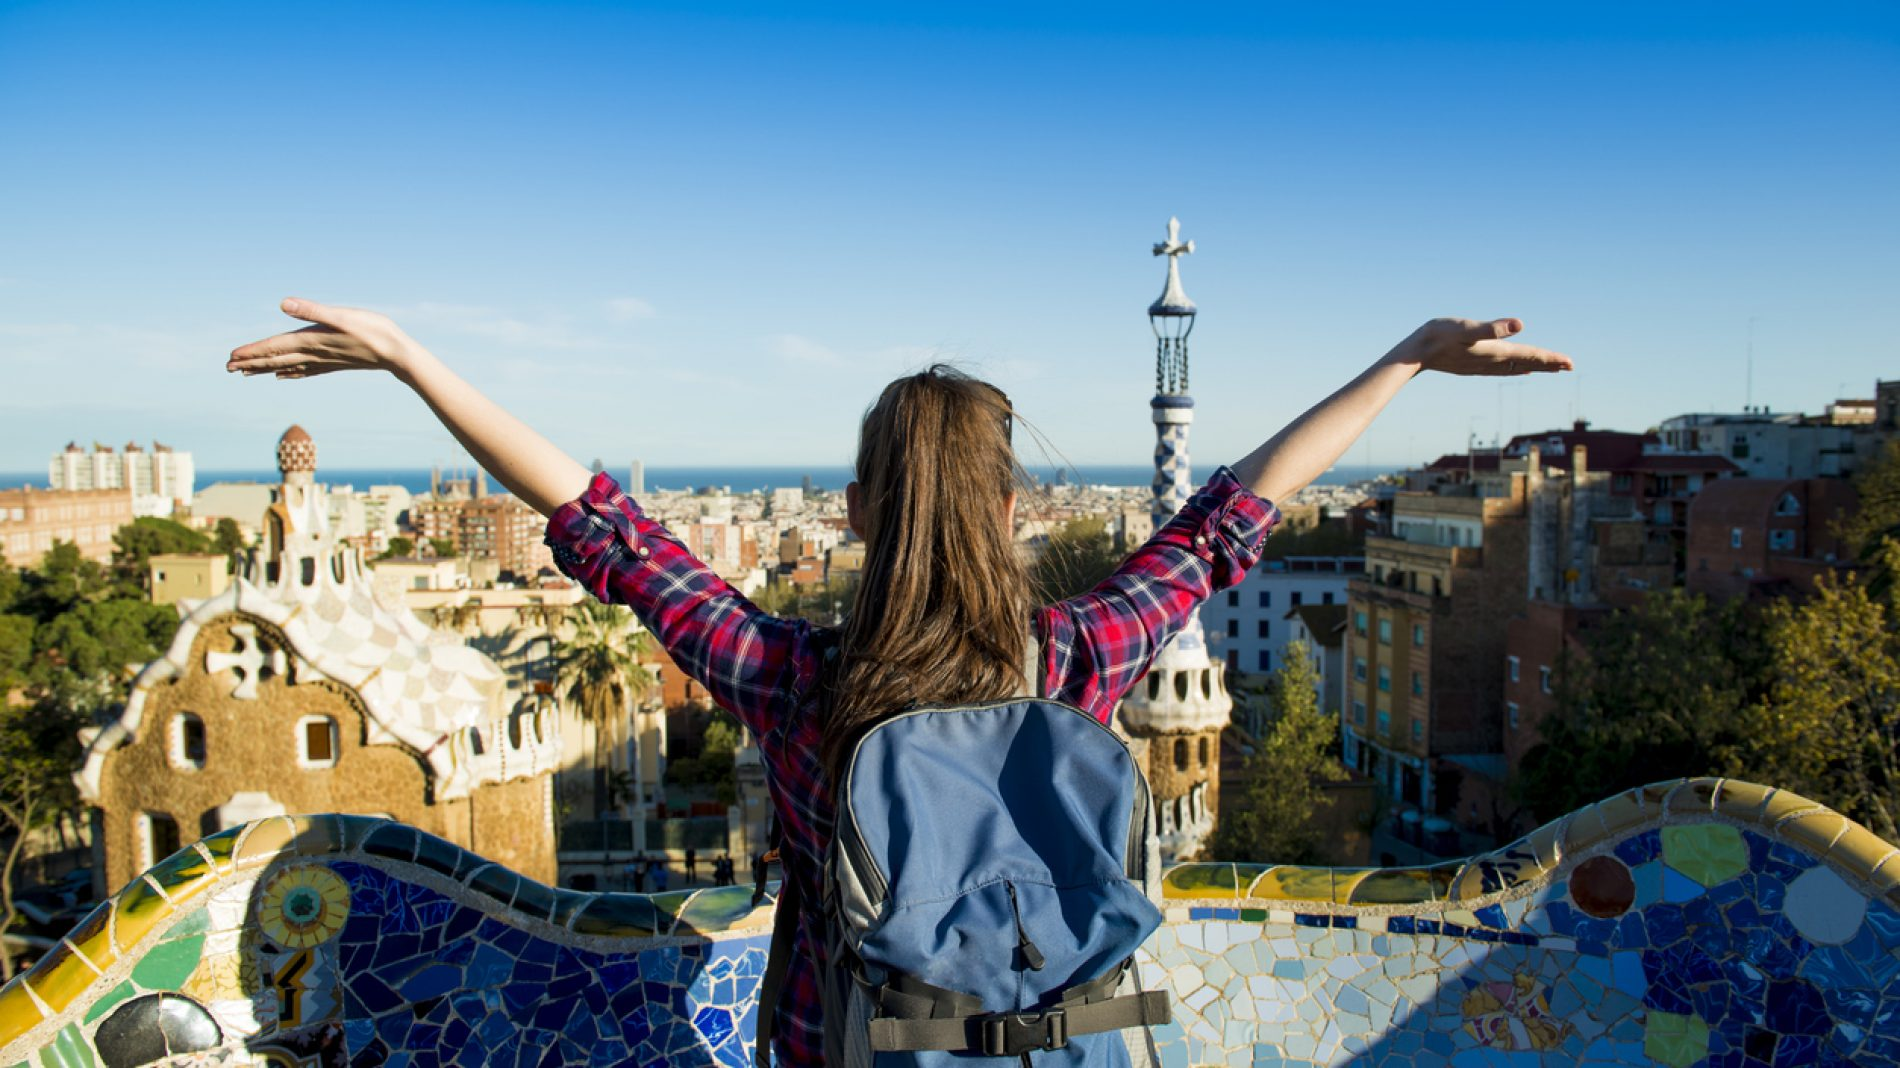 Girl looking over a city with her arms in the air